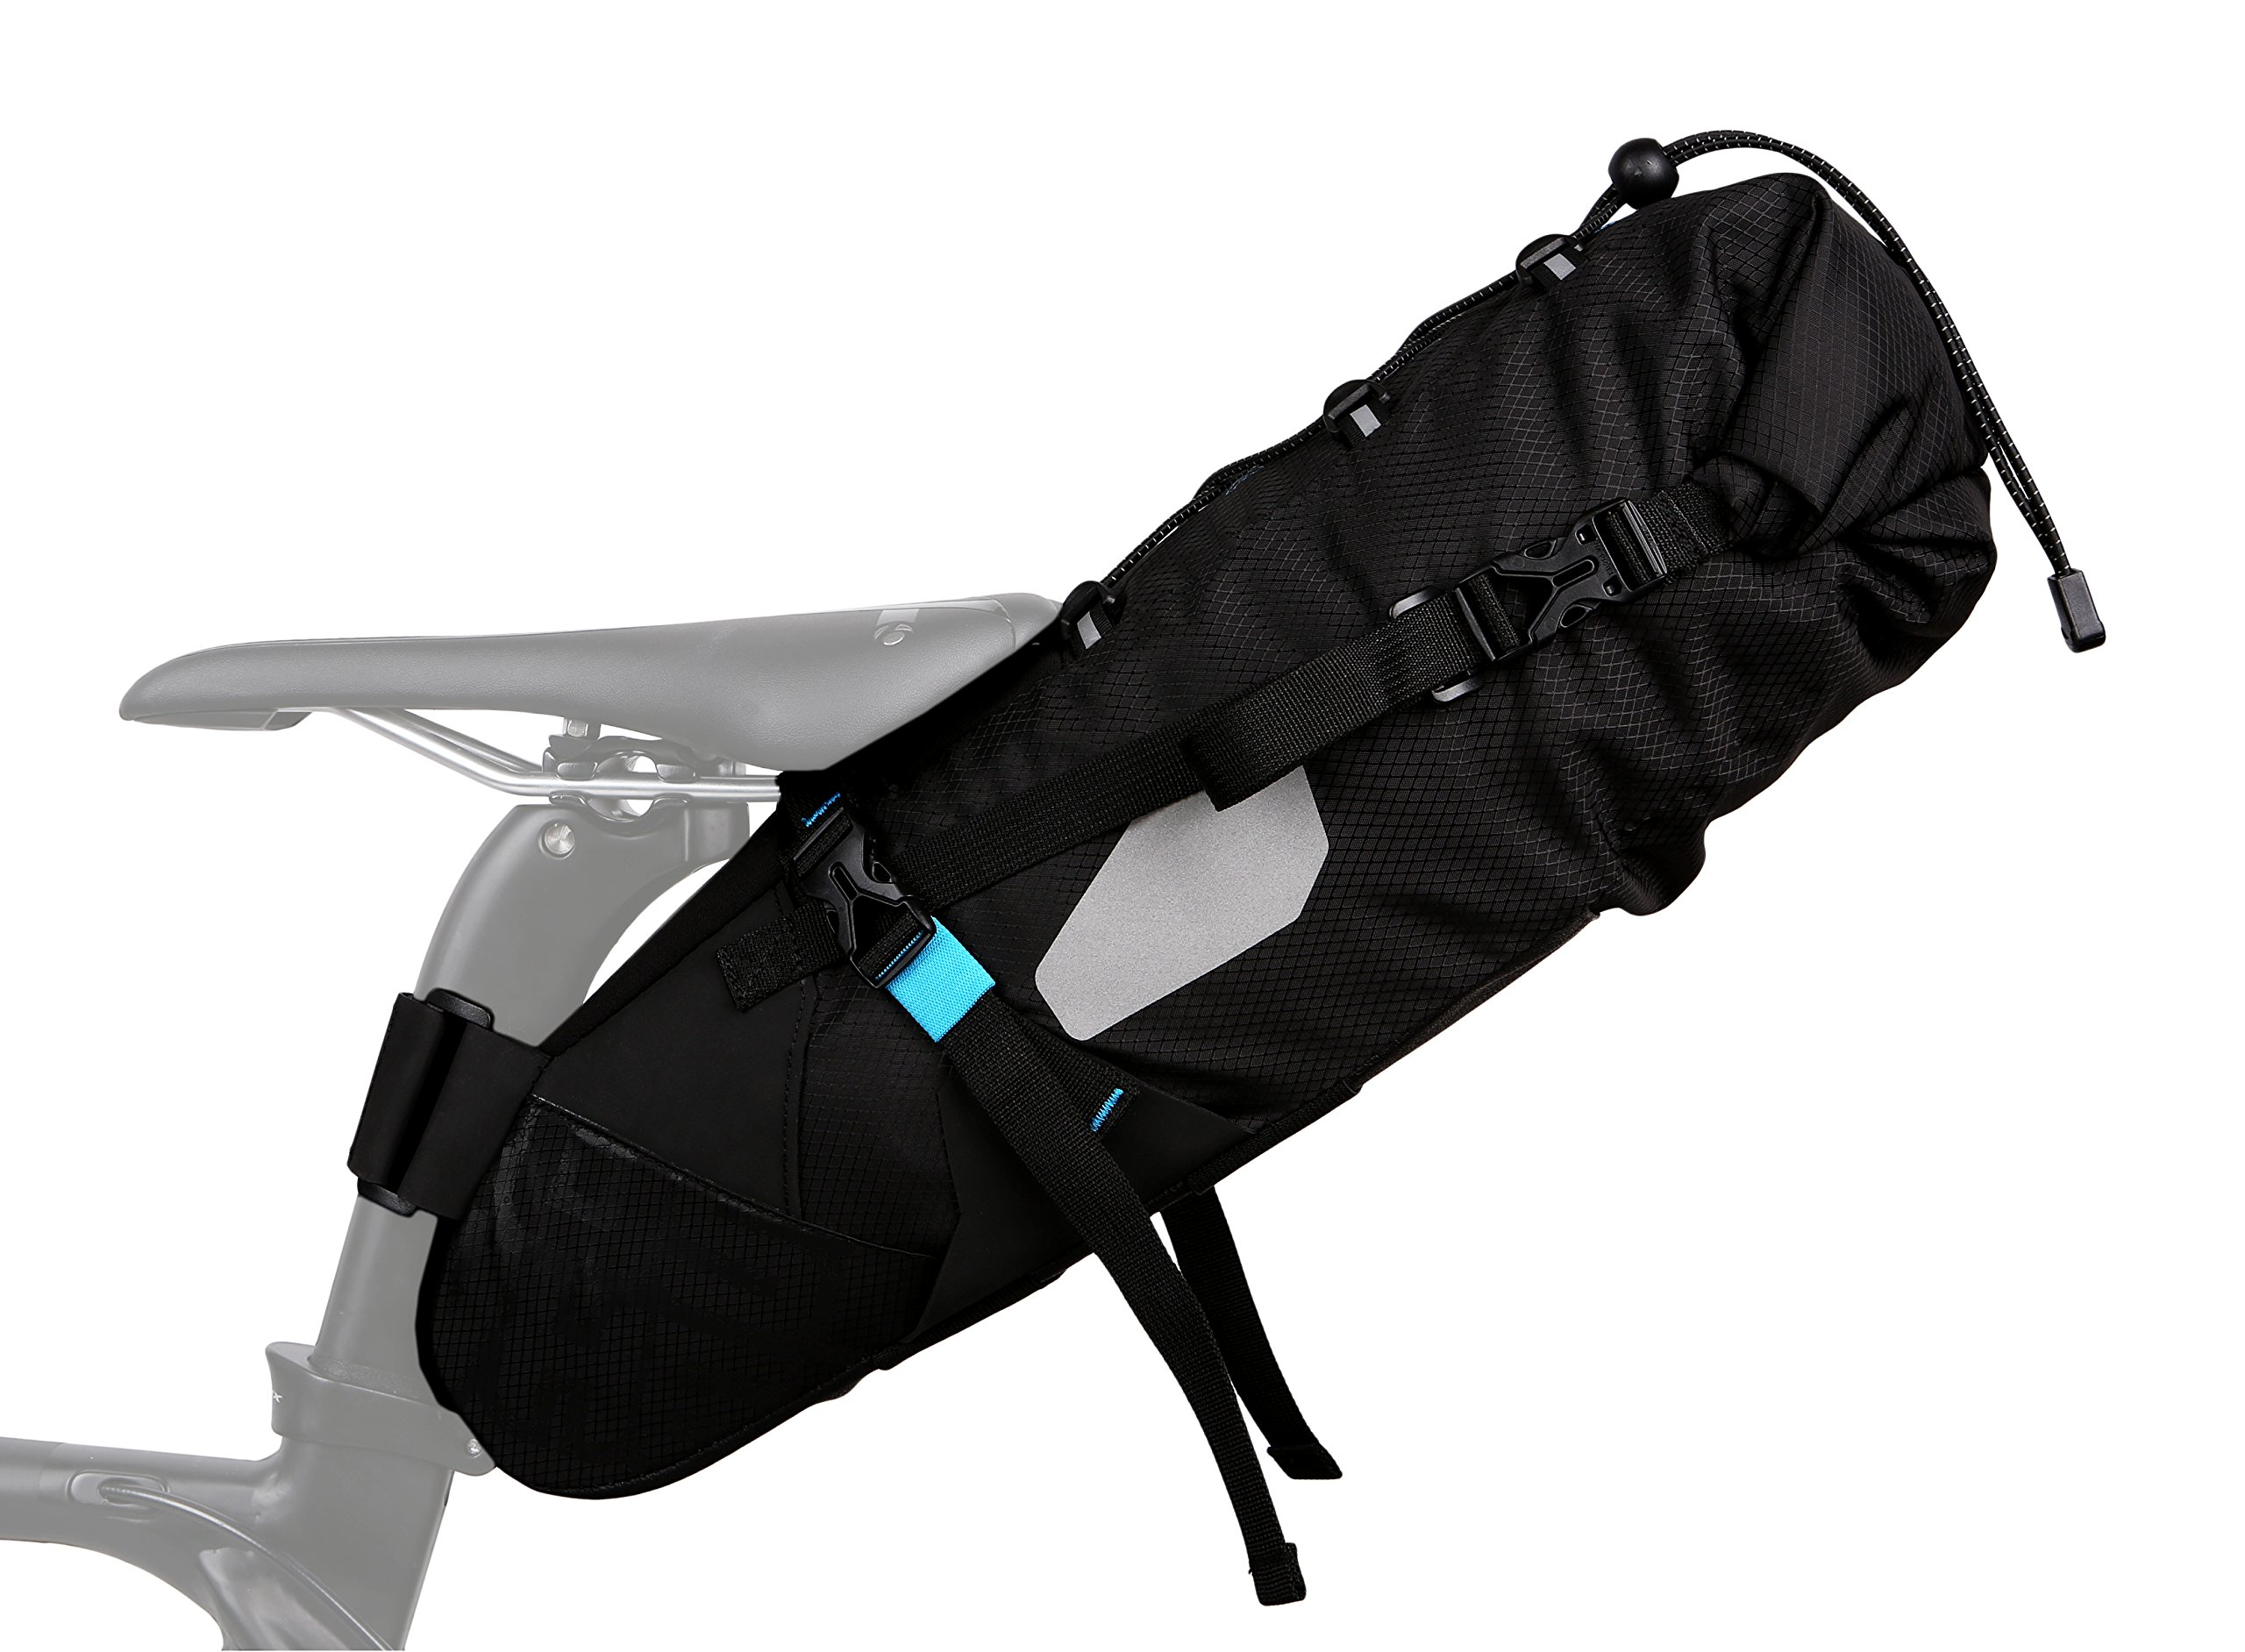 Roswheel Attack Series 131372 Waterproof 3-10 liters Capacity Cycling Accessories Bag Bike Saddle Bag Bicycle Seat Pack Cycling Tail Pouch